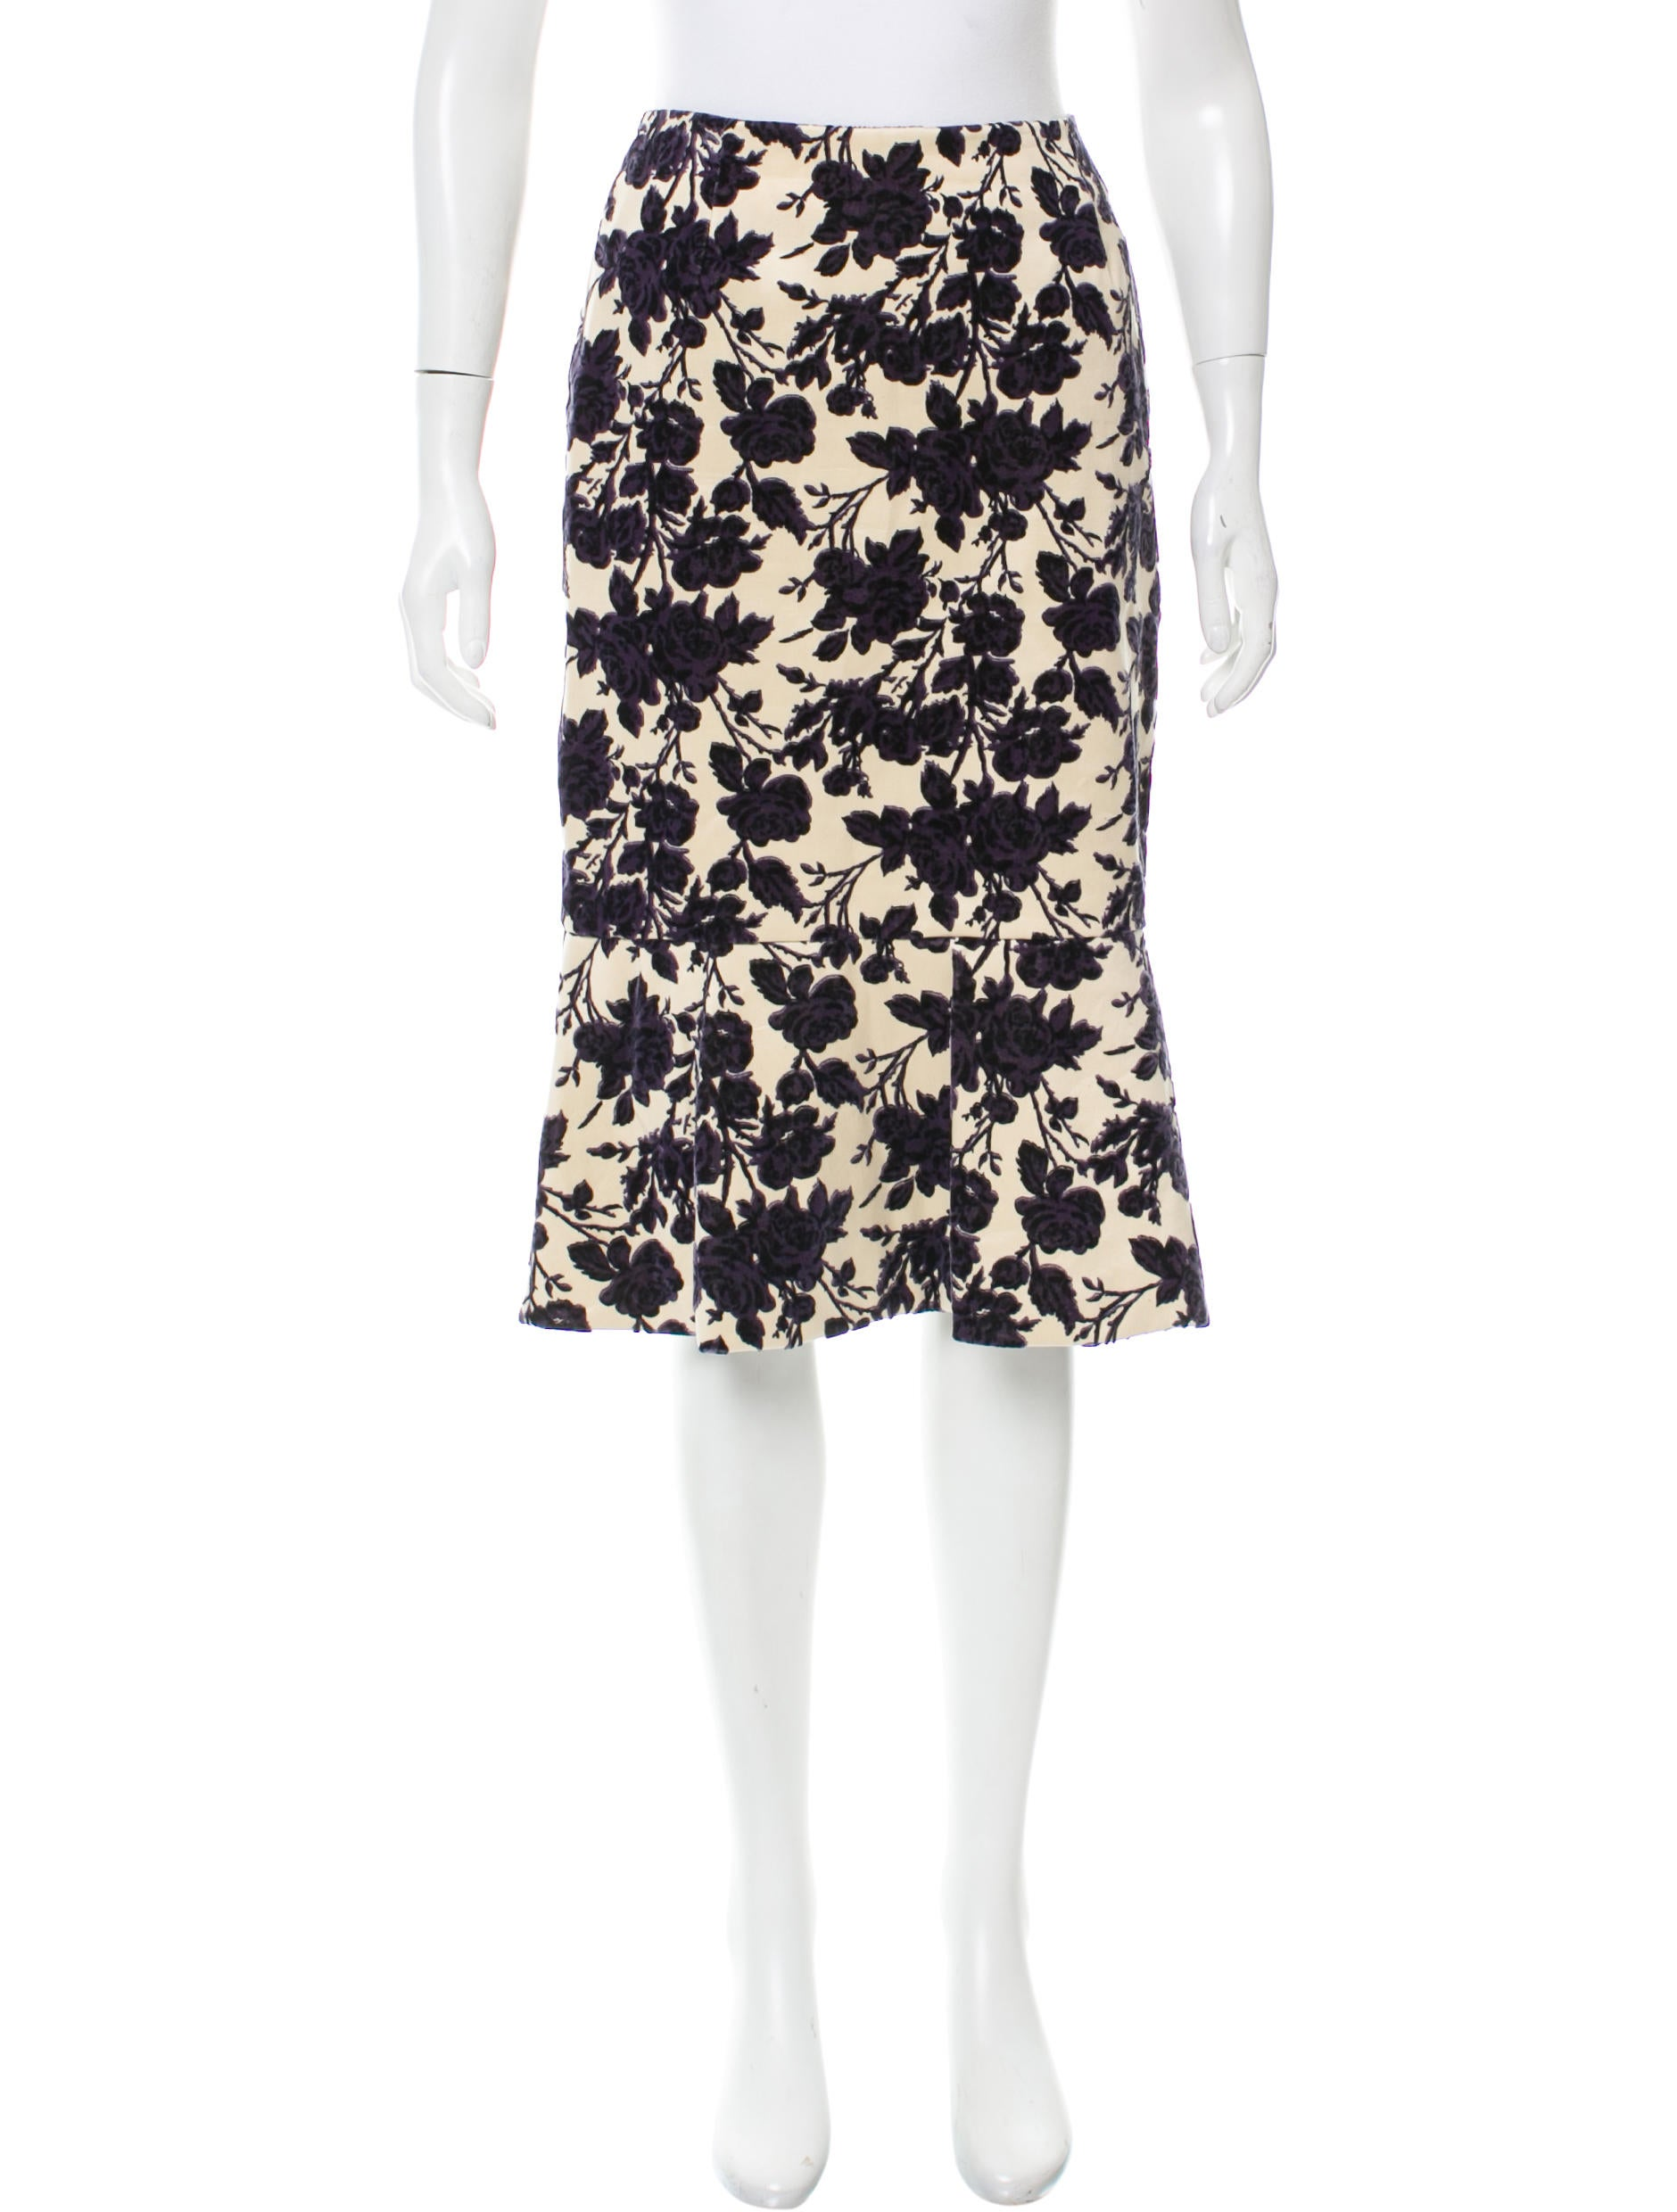 burch floral knee length skirt clothing wto104782